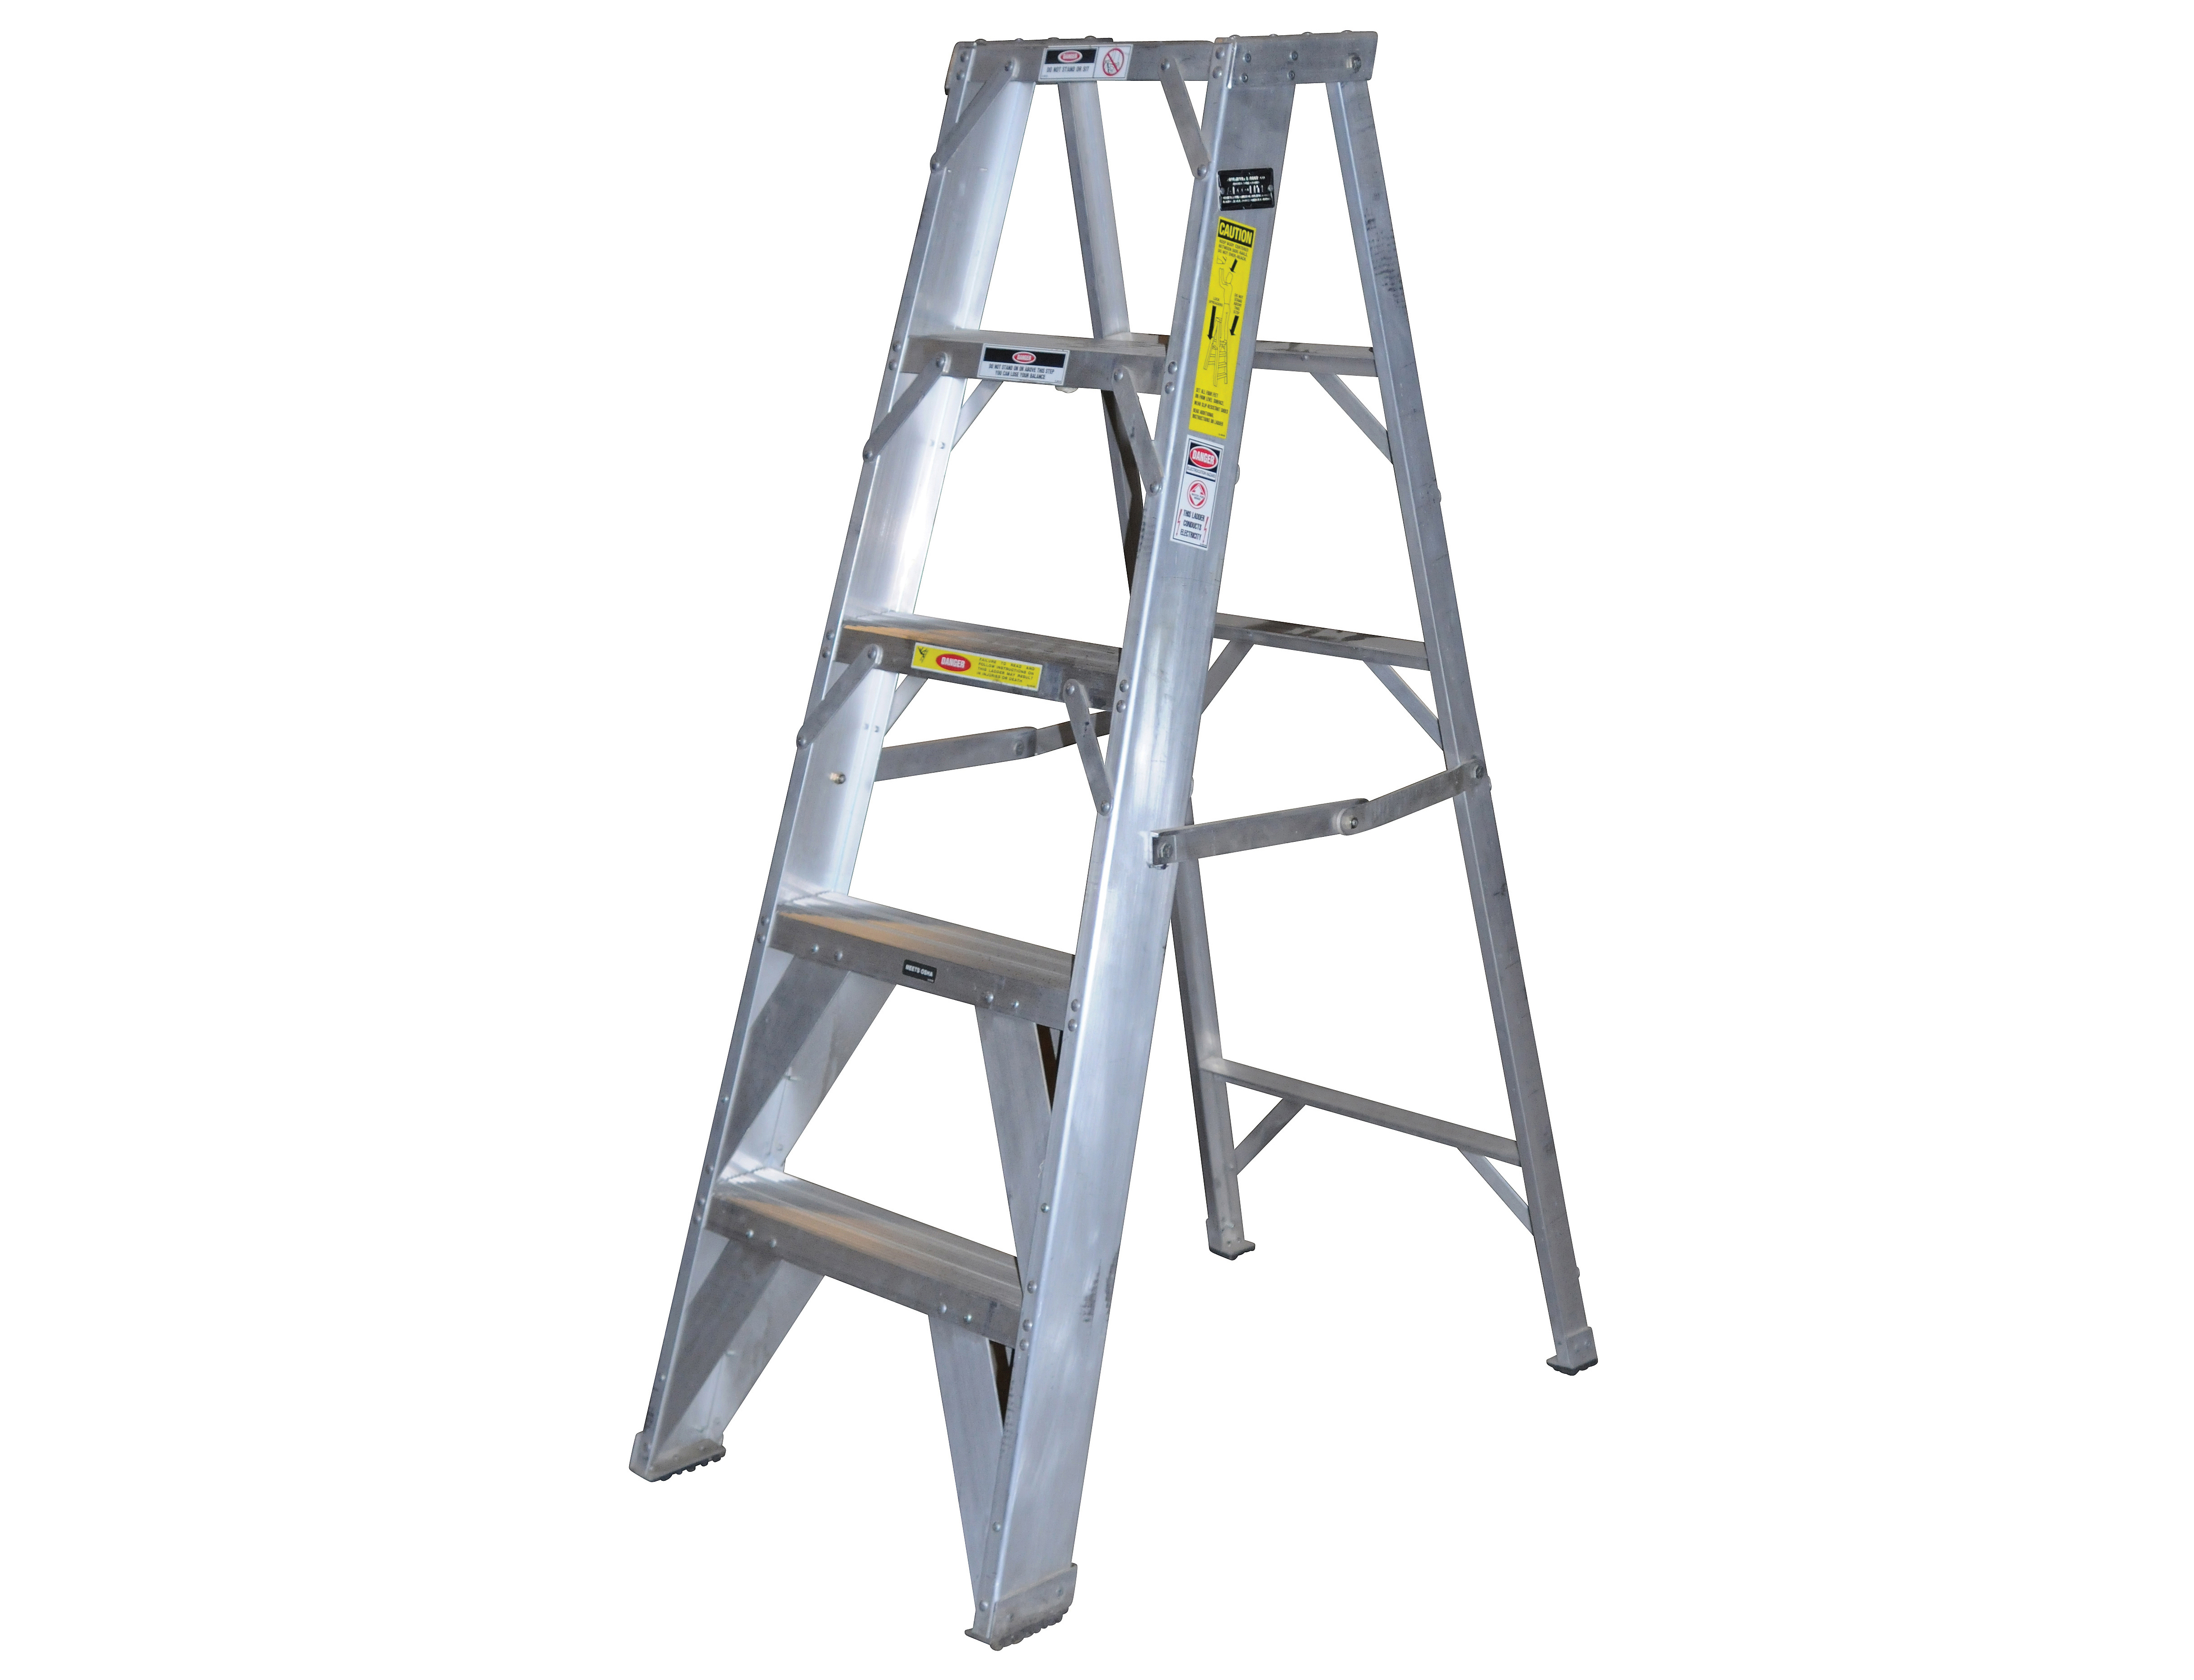 All Portable Step Ladders Platform Step Ladders Calico